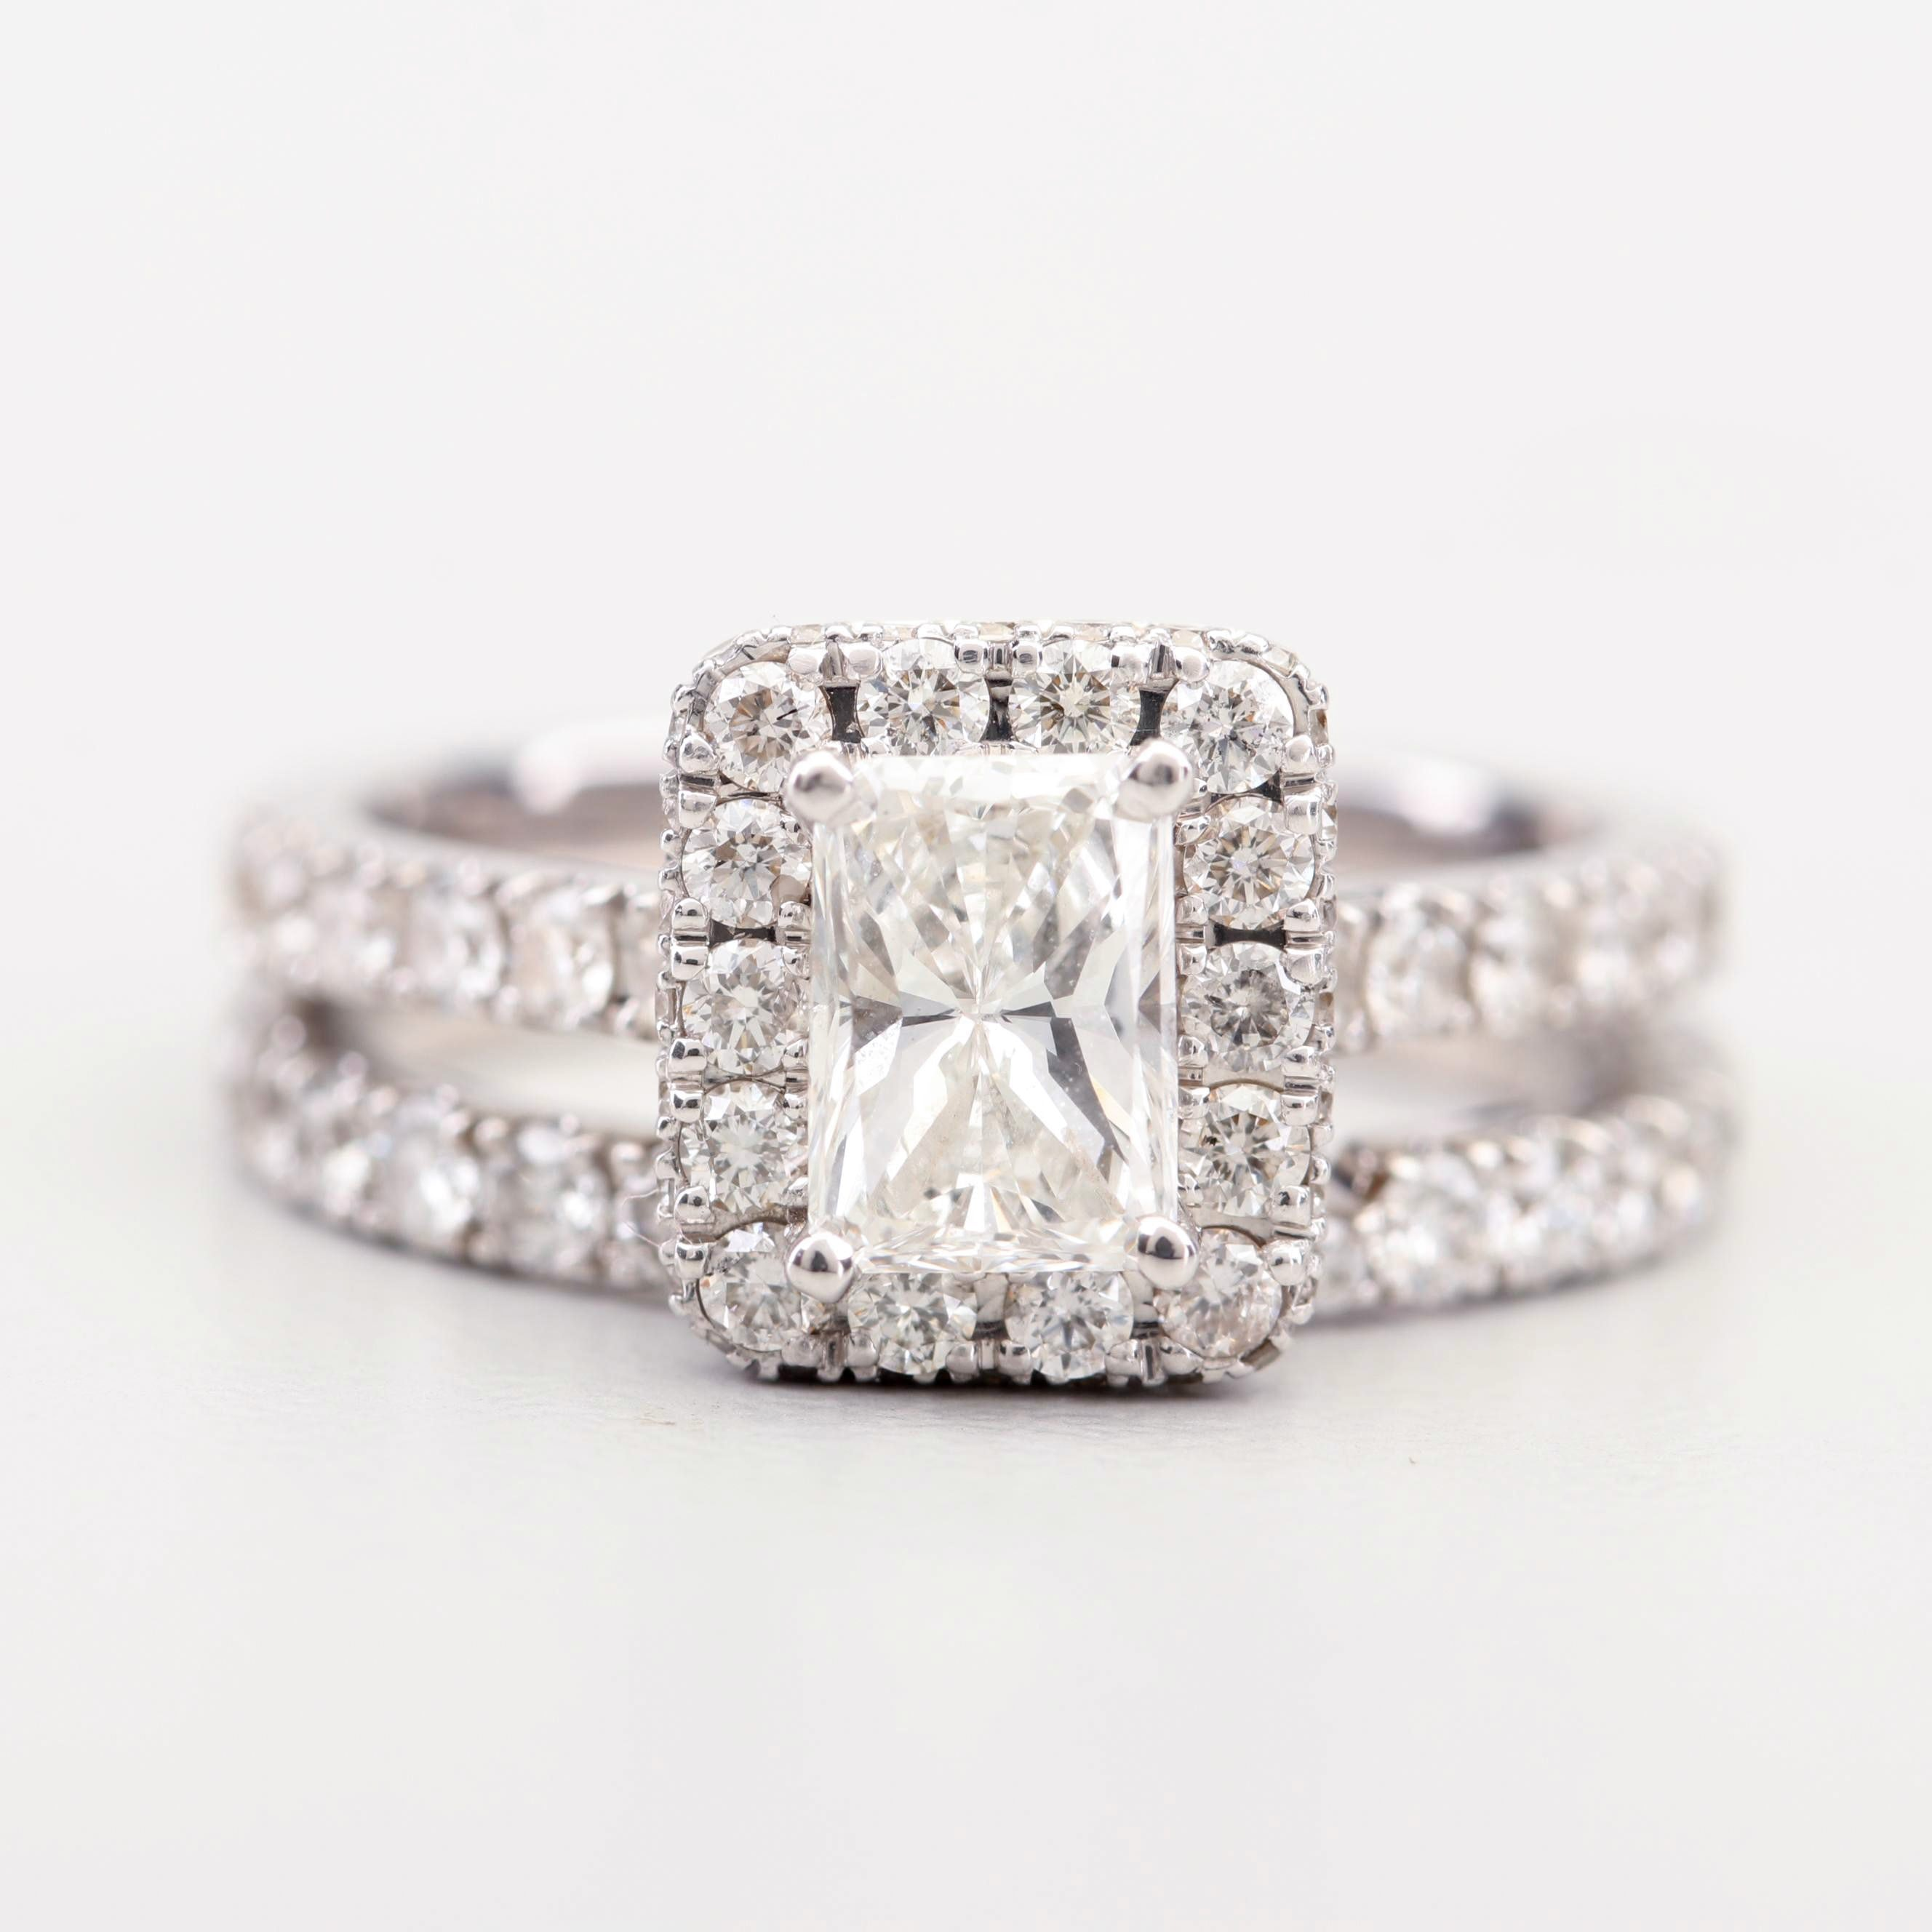 Neil Lane 14K White Gold Diamond Engagement Ring and Band